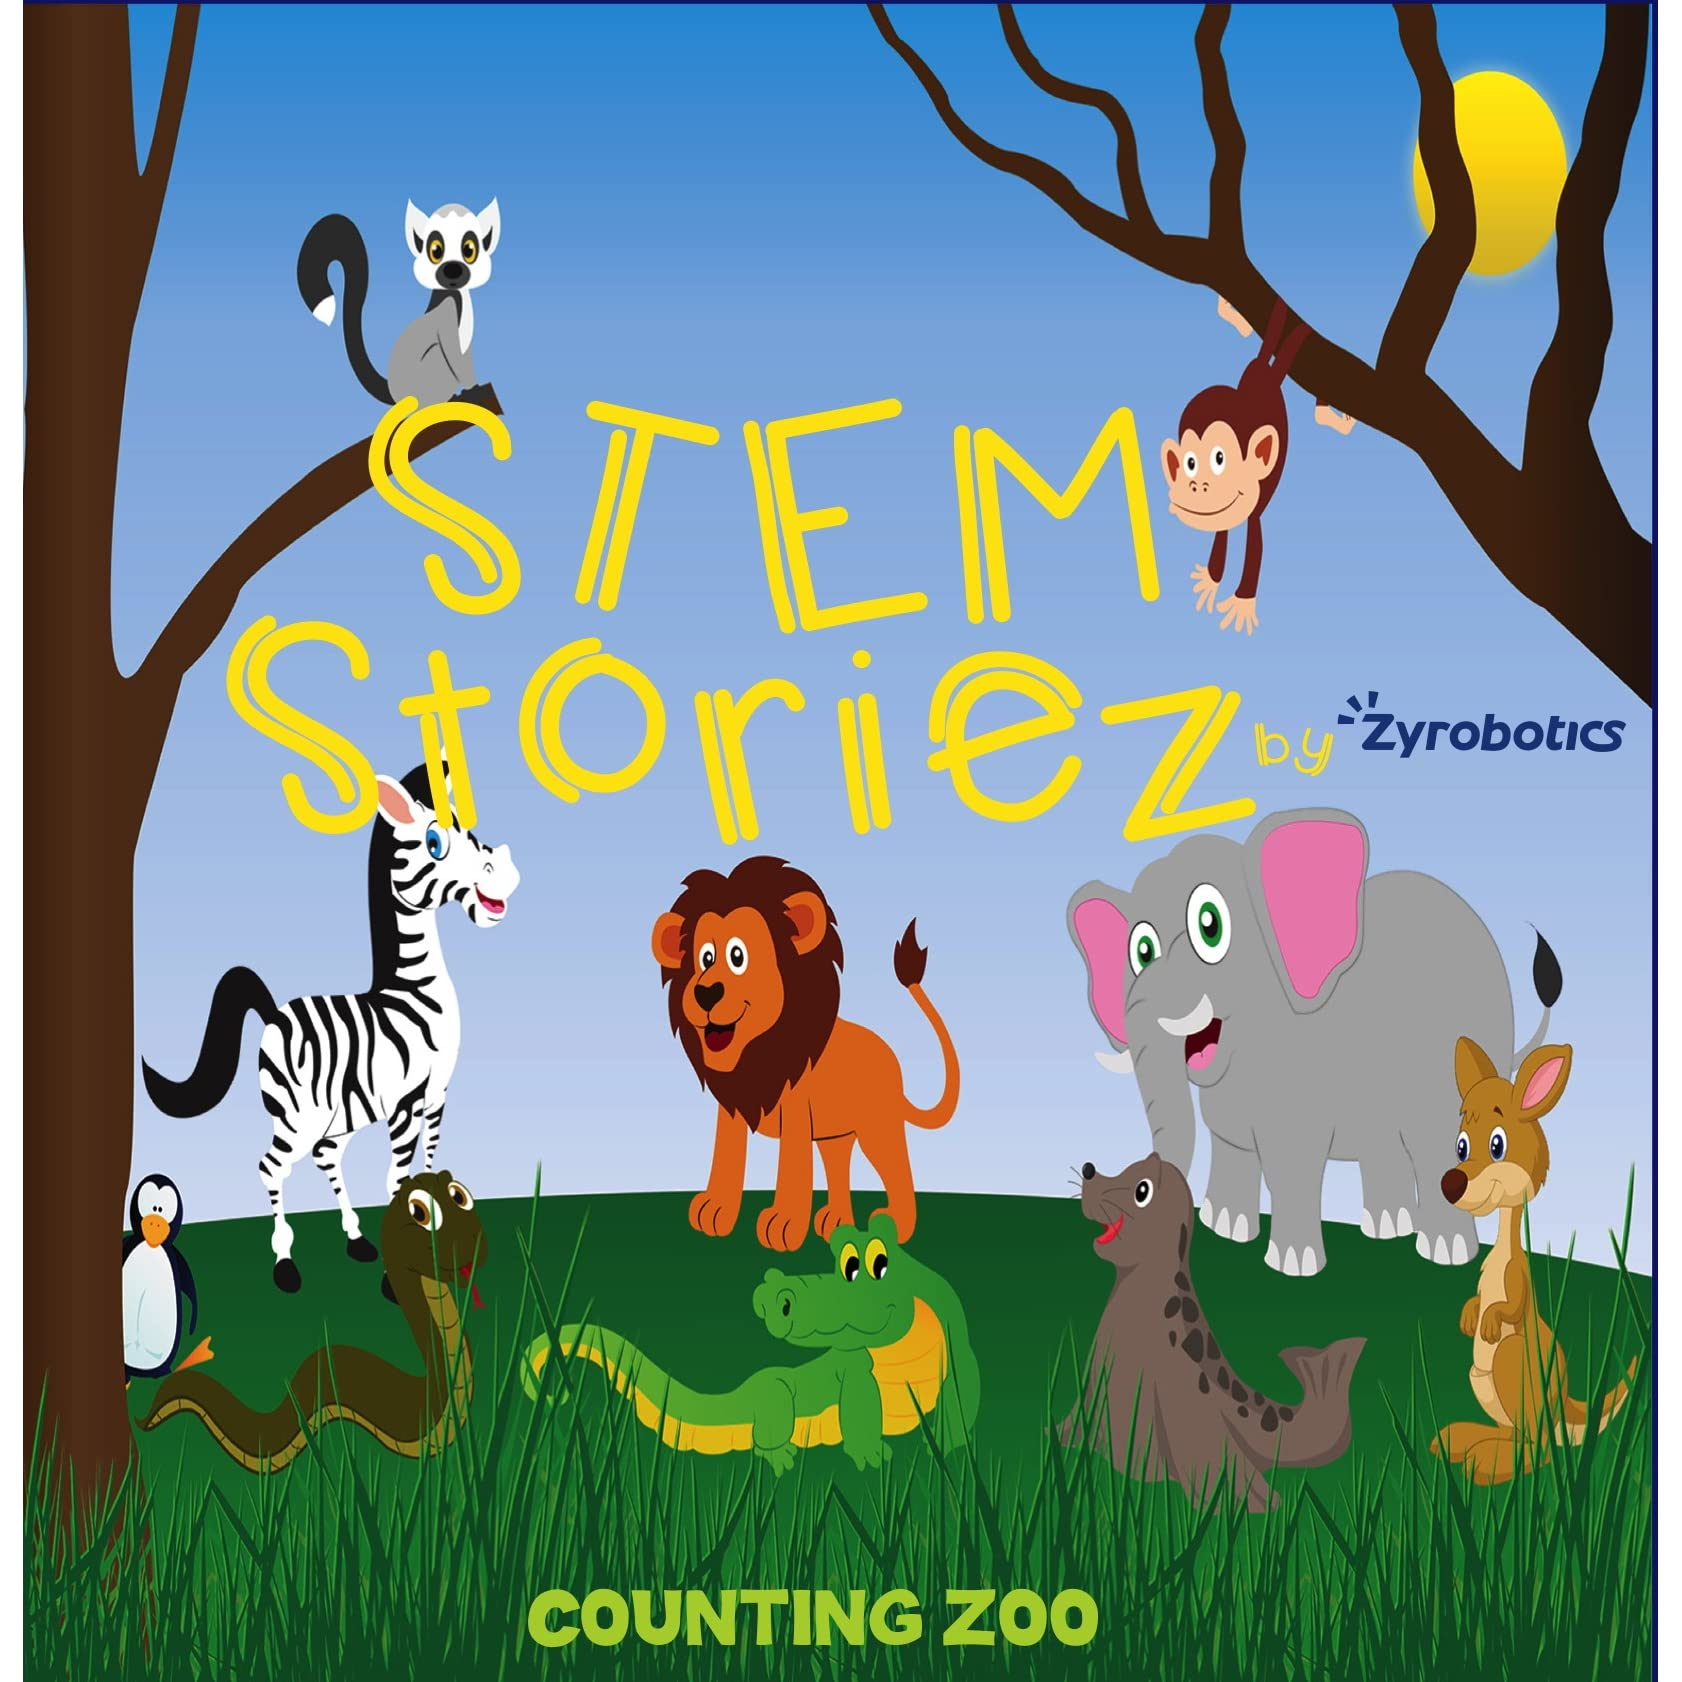 Stem Storiez  Counting Zoo By Zyrobotics €� Reviews, Discussion, Bookclubs,  Lists